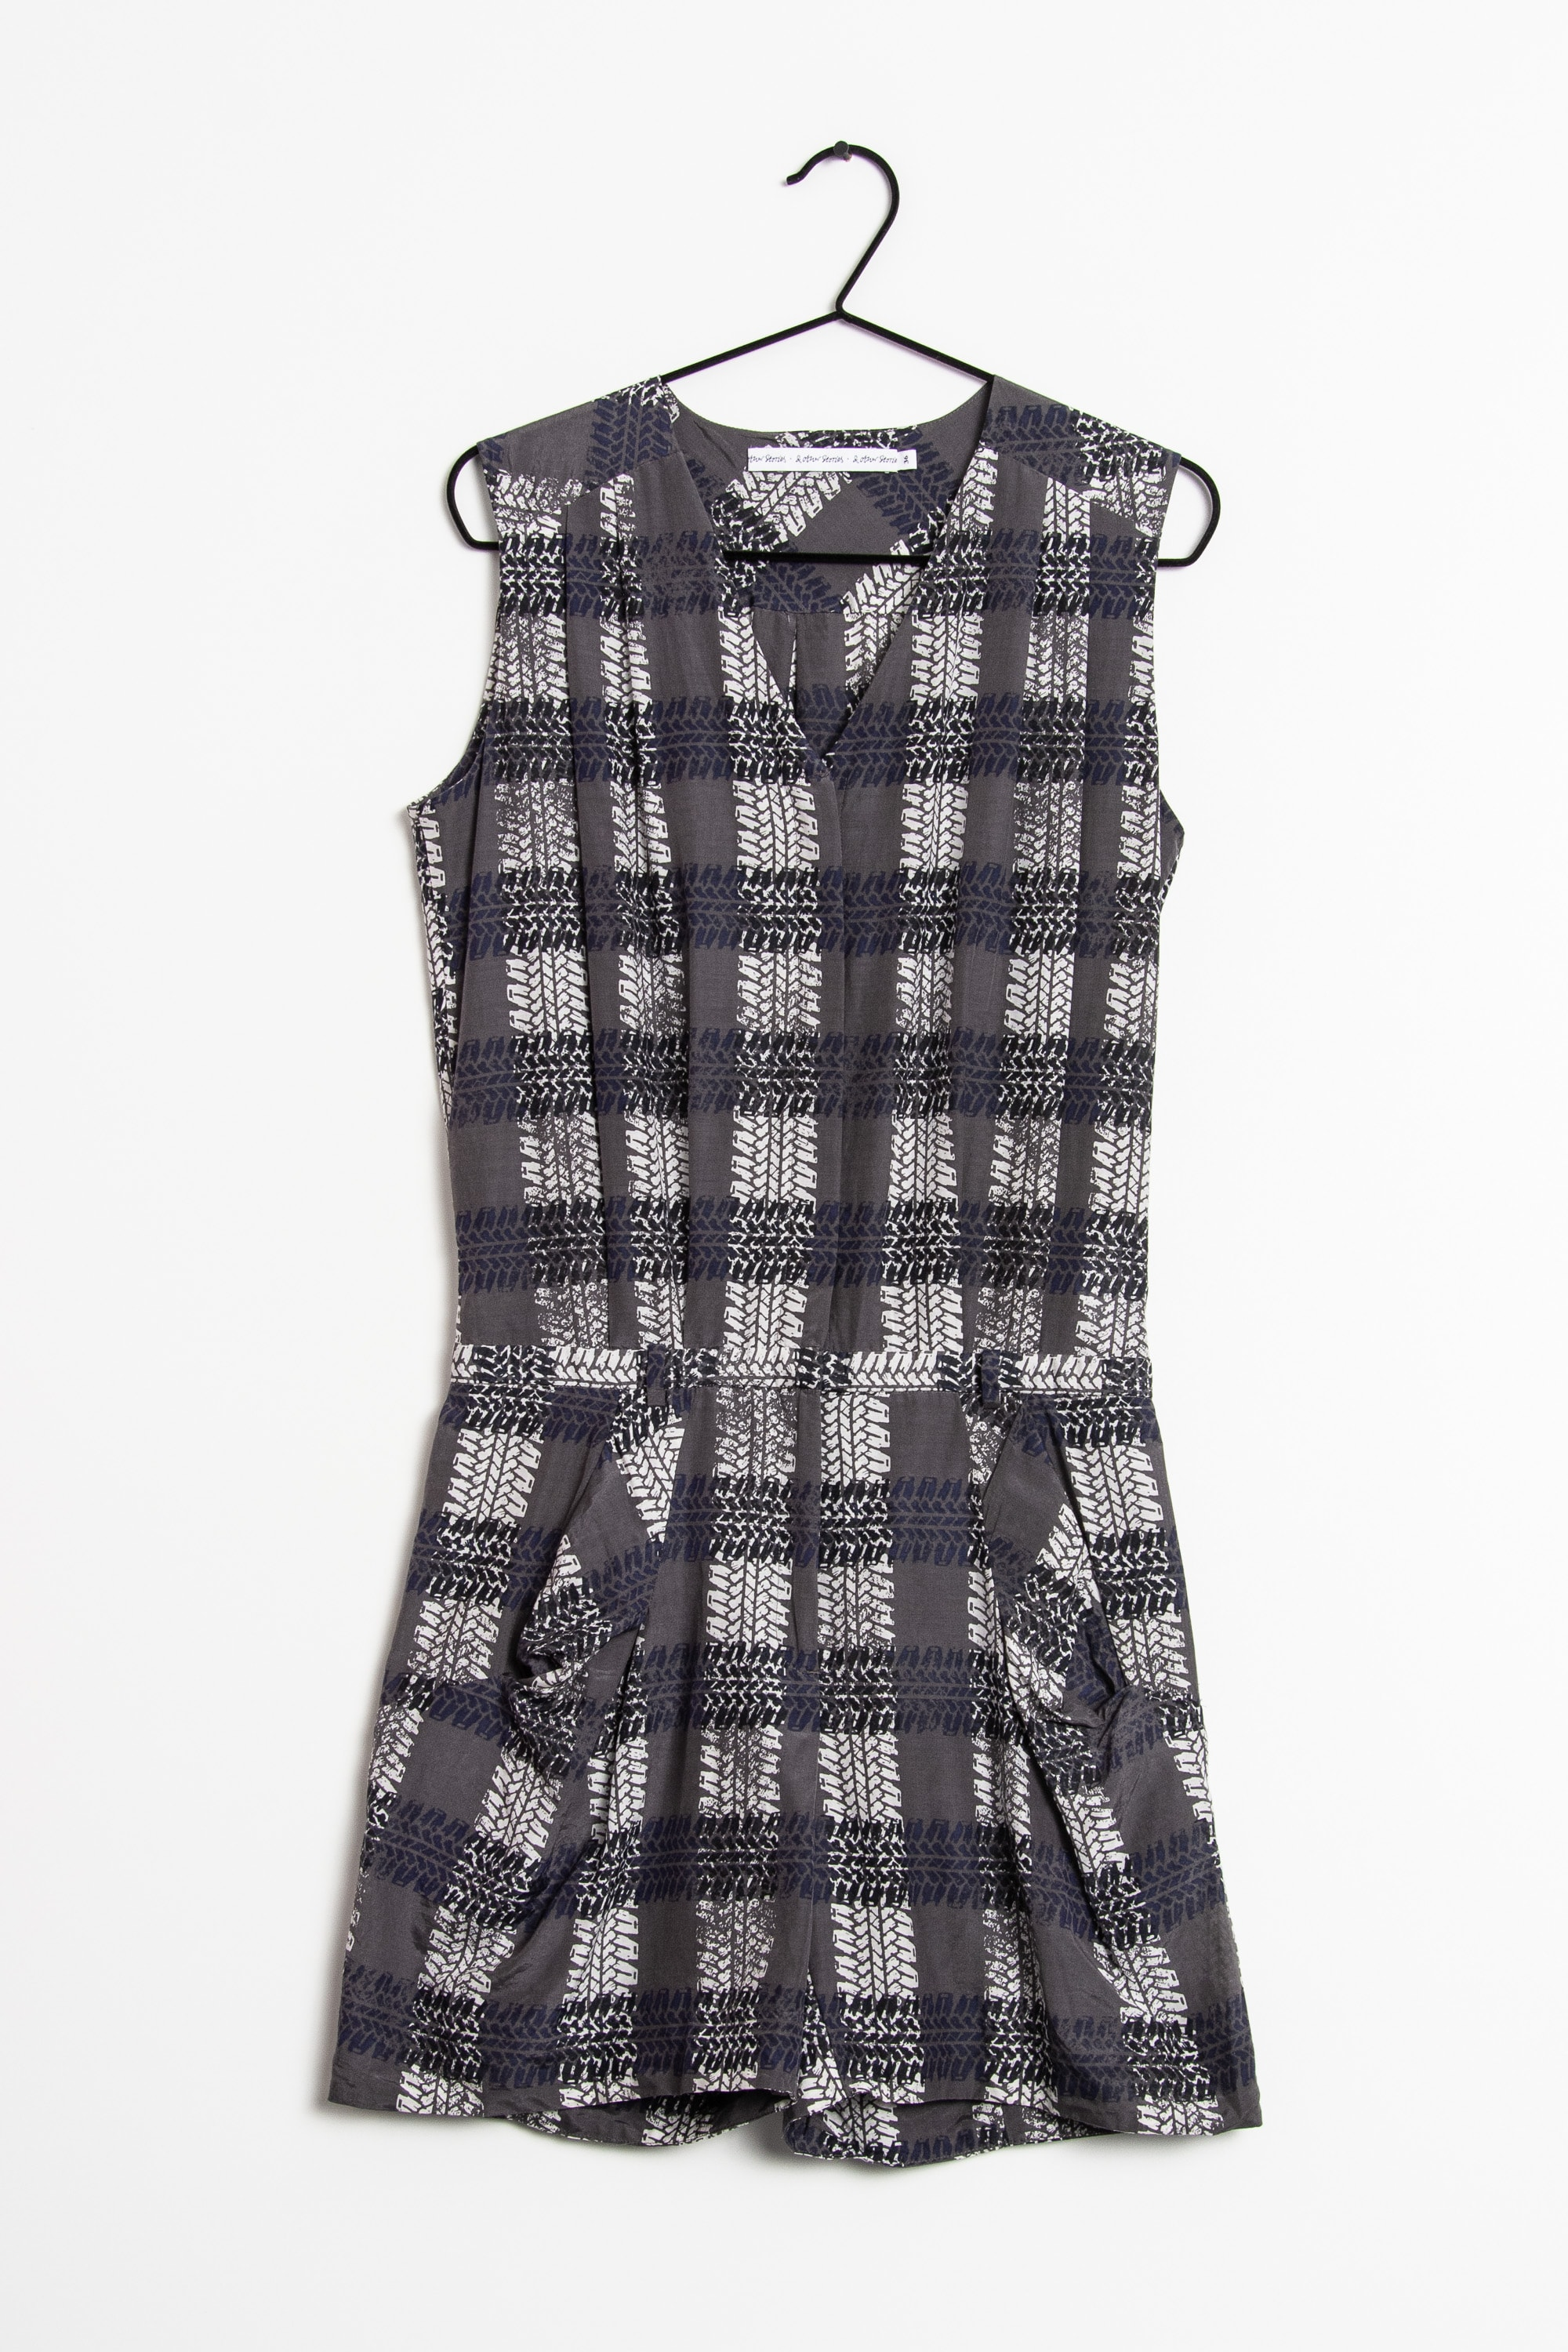 & other stories Jumpsuit / Overall Grau Gr.36